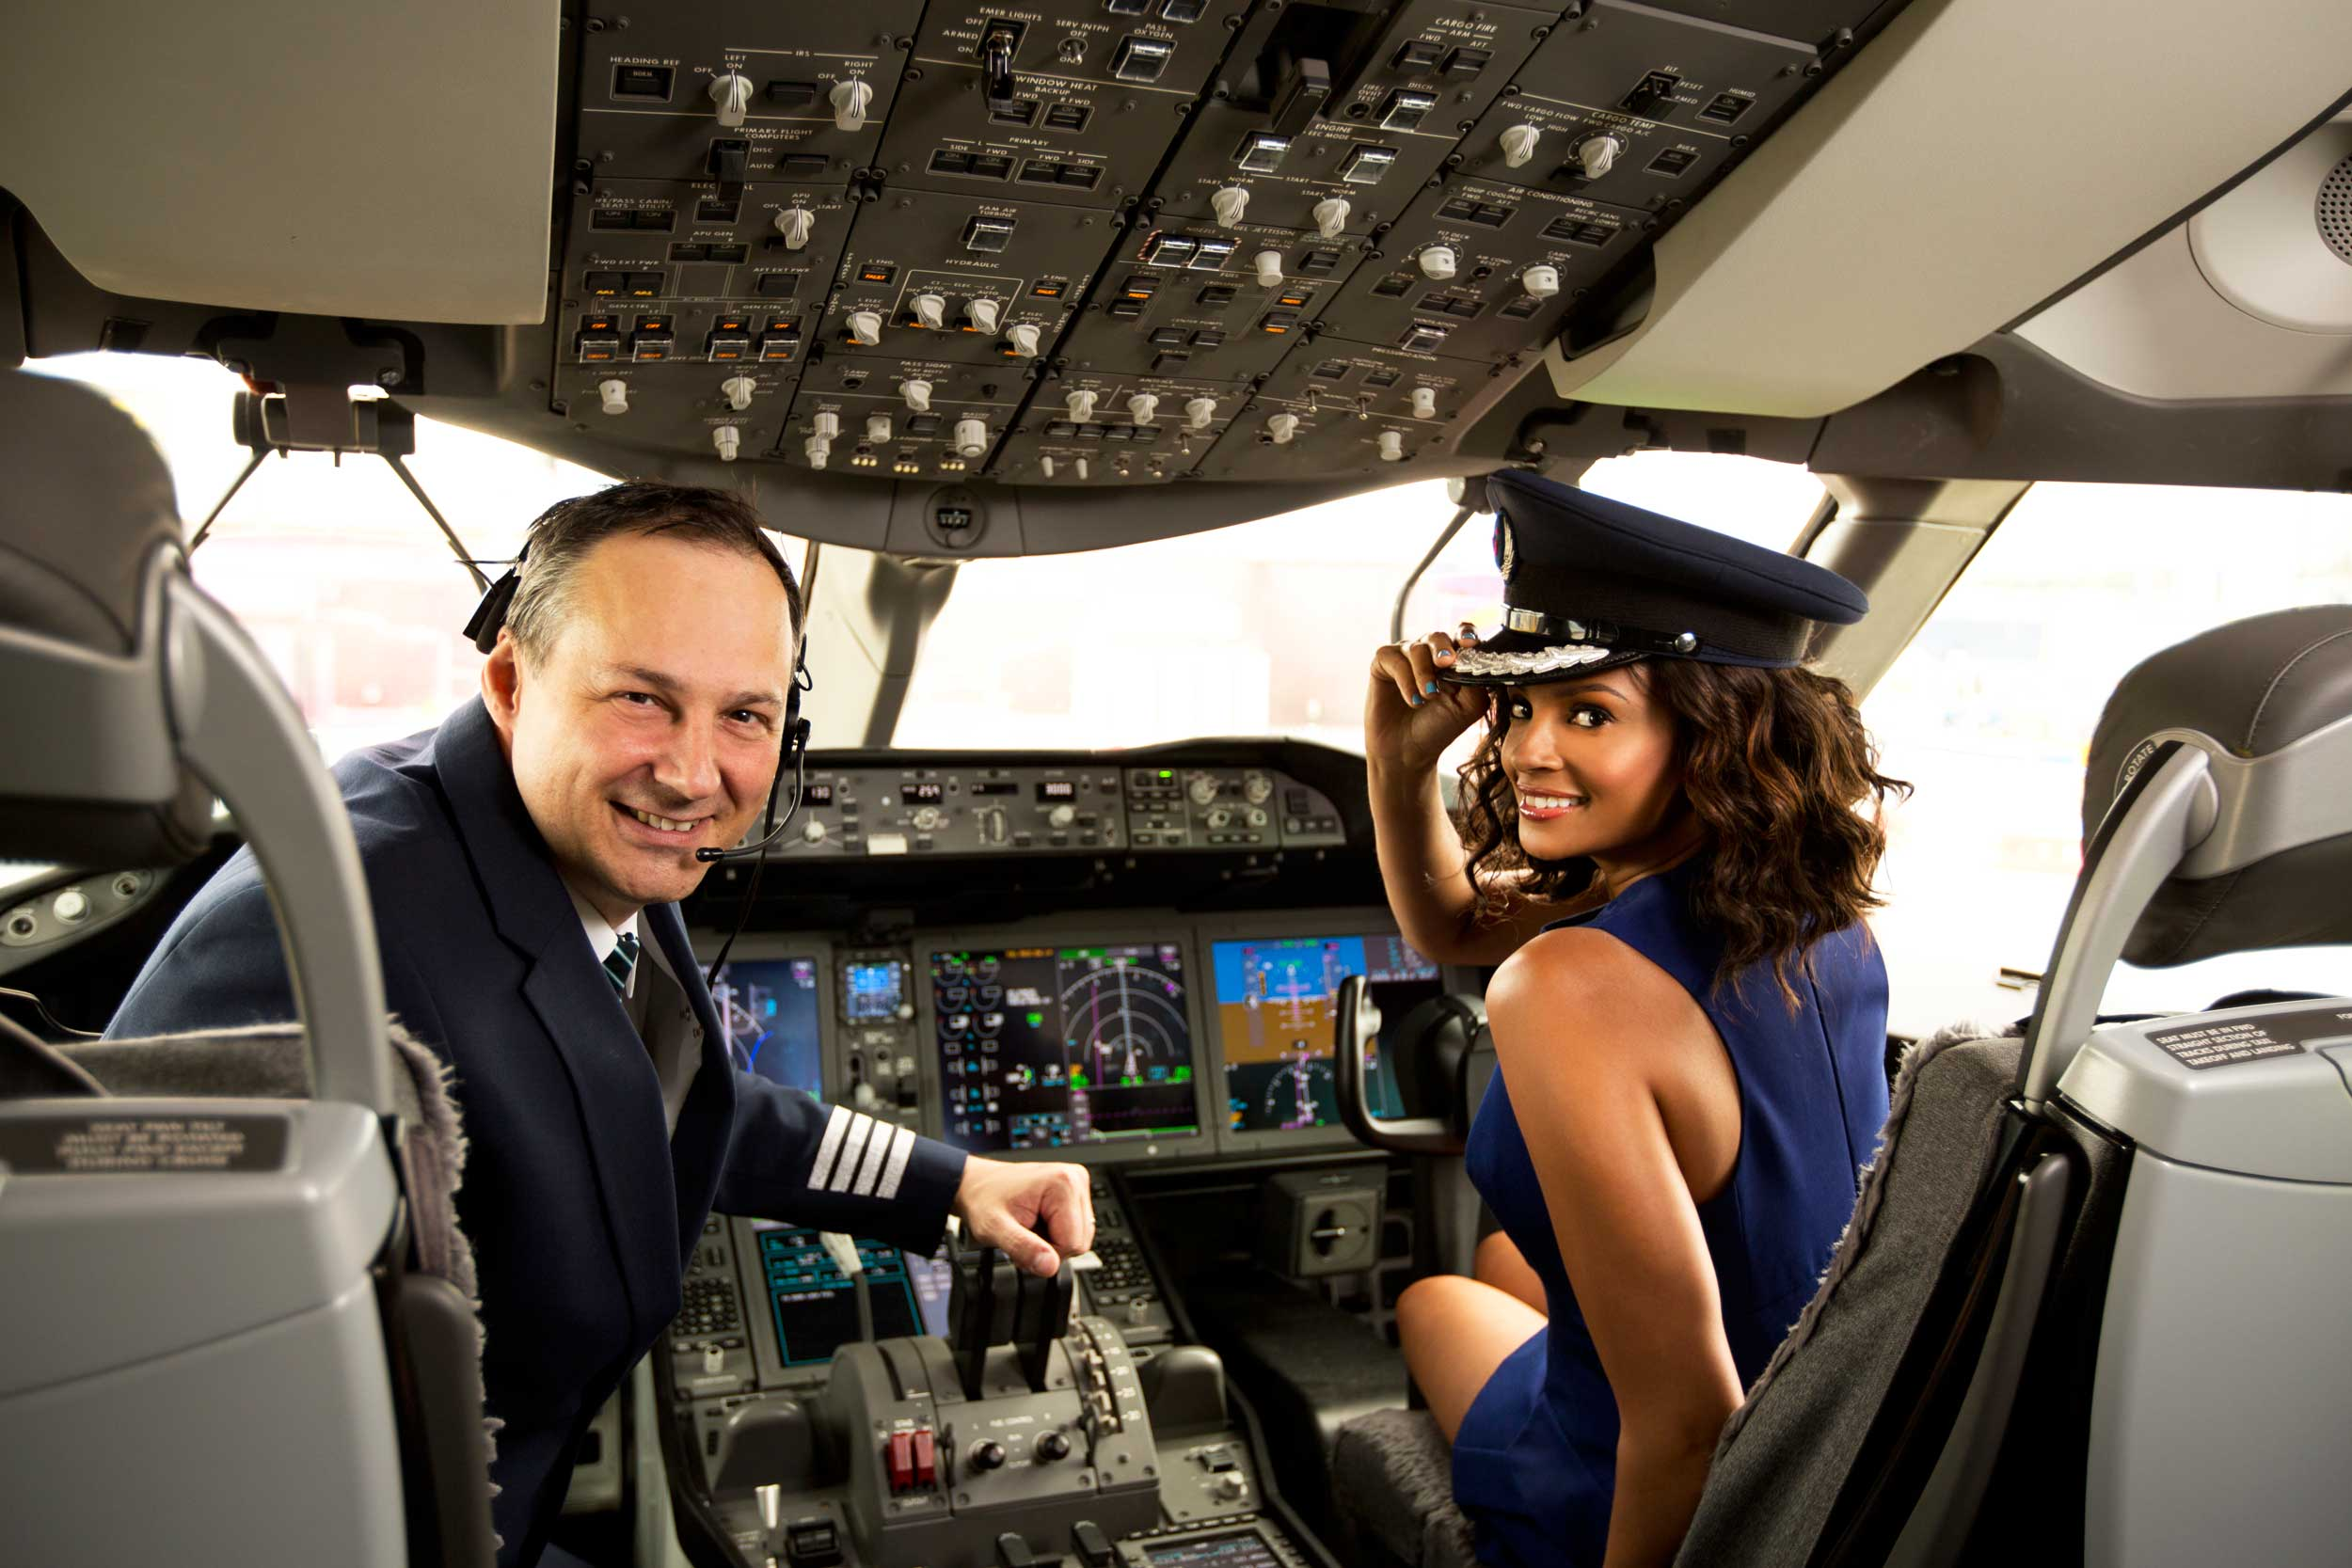 Cabin crew in air plane 8